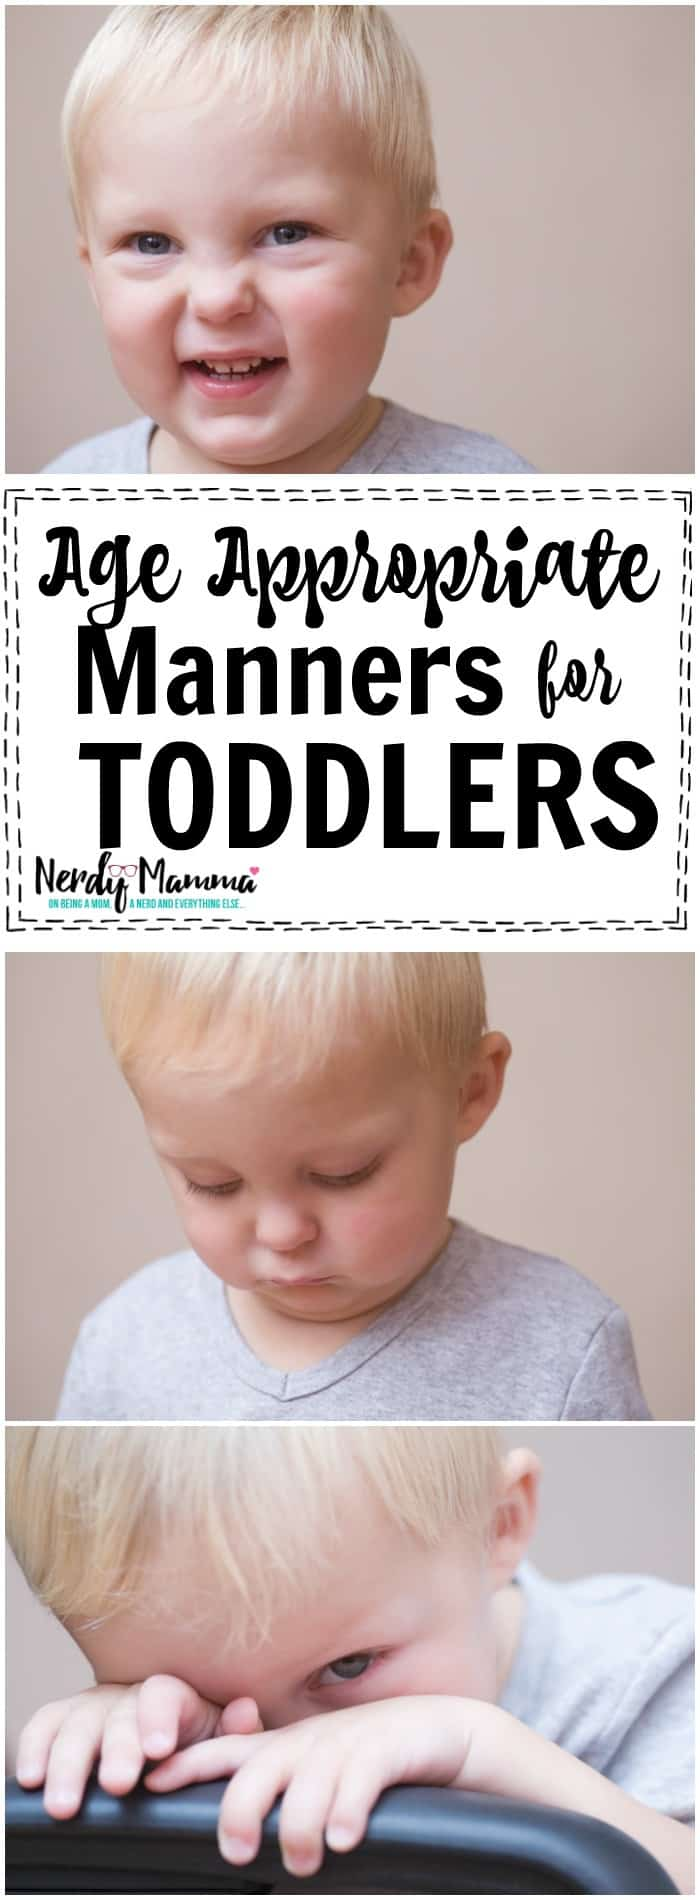 age-appropriate-manners-for-toddlers-pin